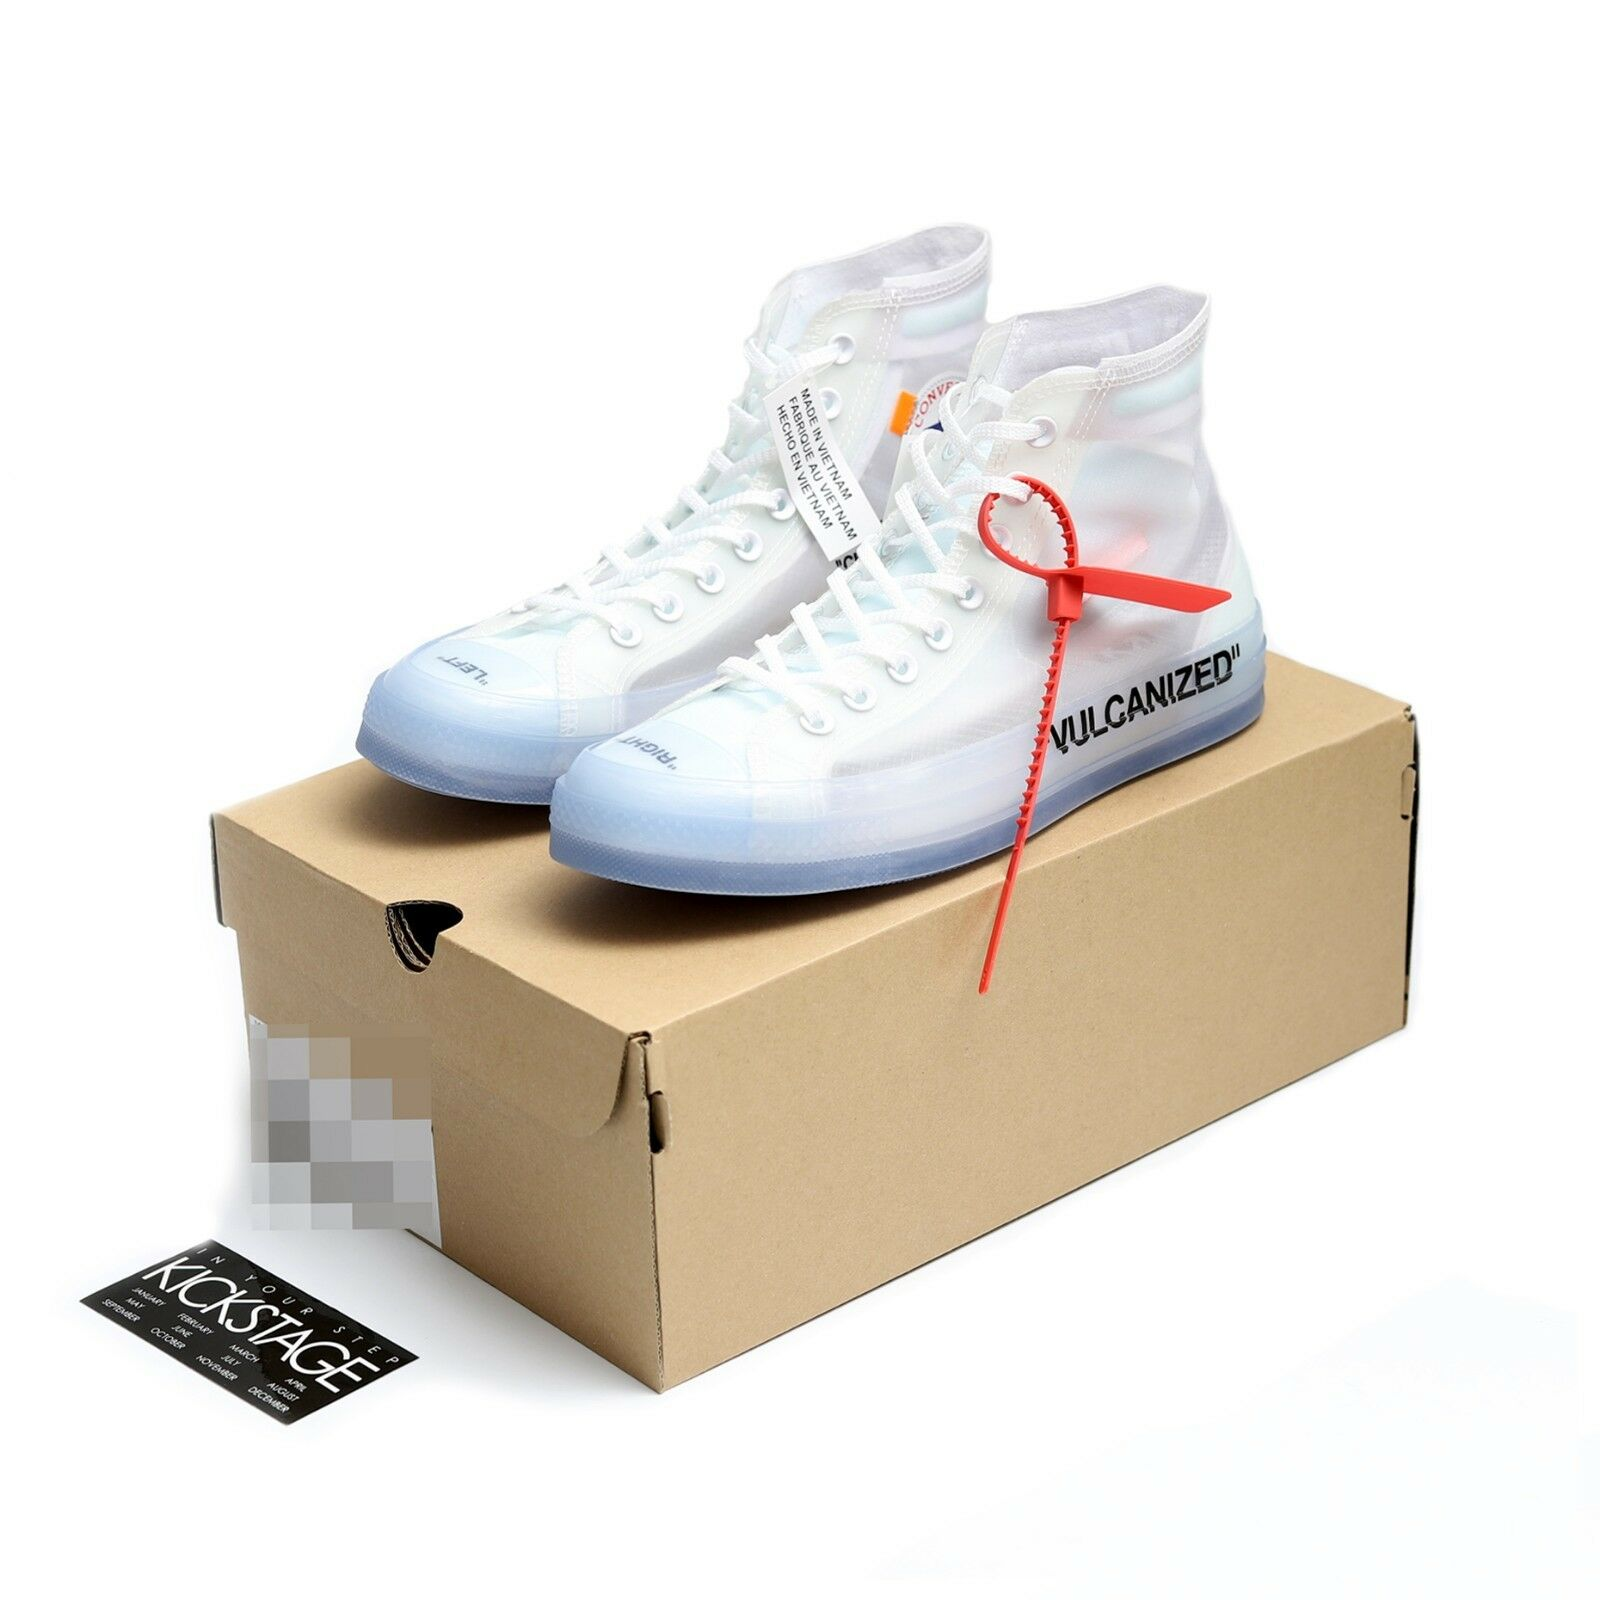 adb25196c825 OFF-WHITE x Converse Chuck Taylor All Star 70 Hi THE TEN 10 Virgil Abloh  162204C